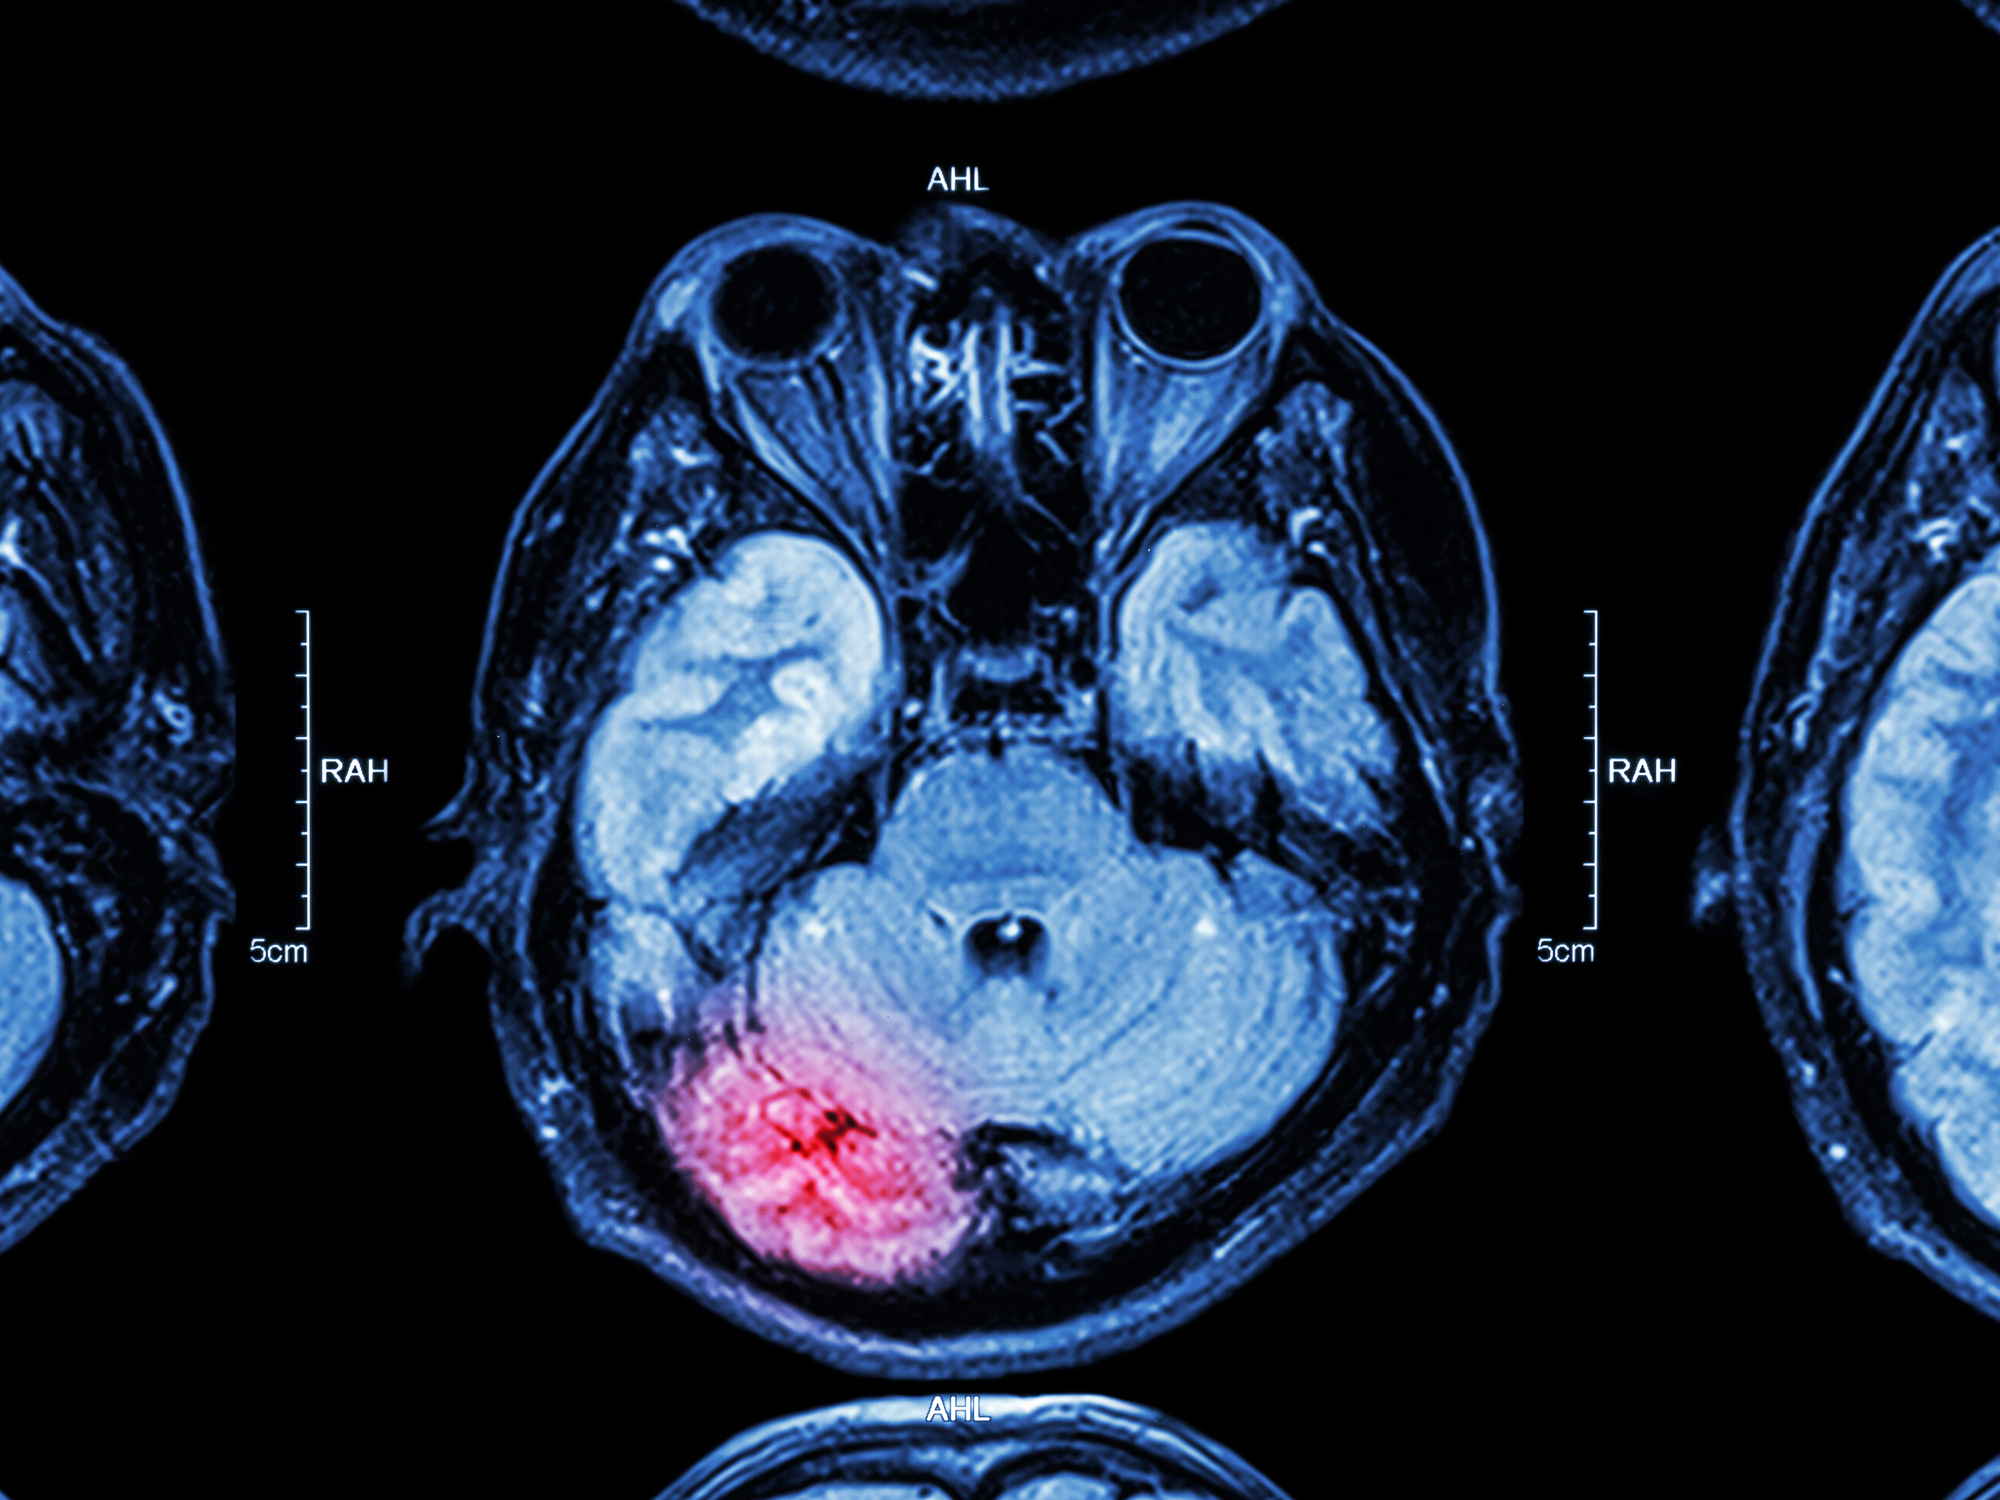 Acquired brain injury: What are the different types and how are they caused?